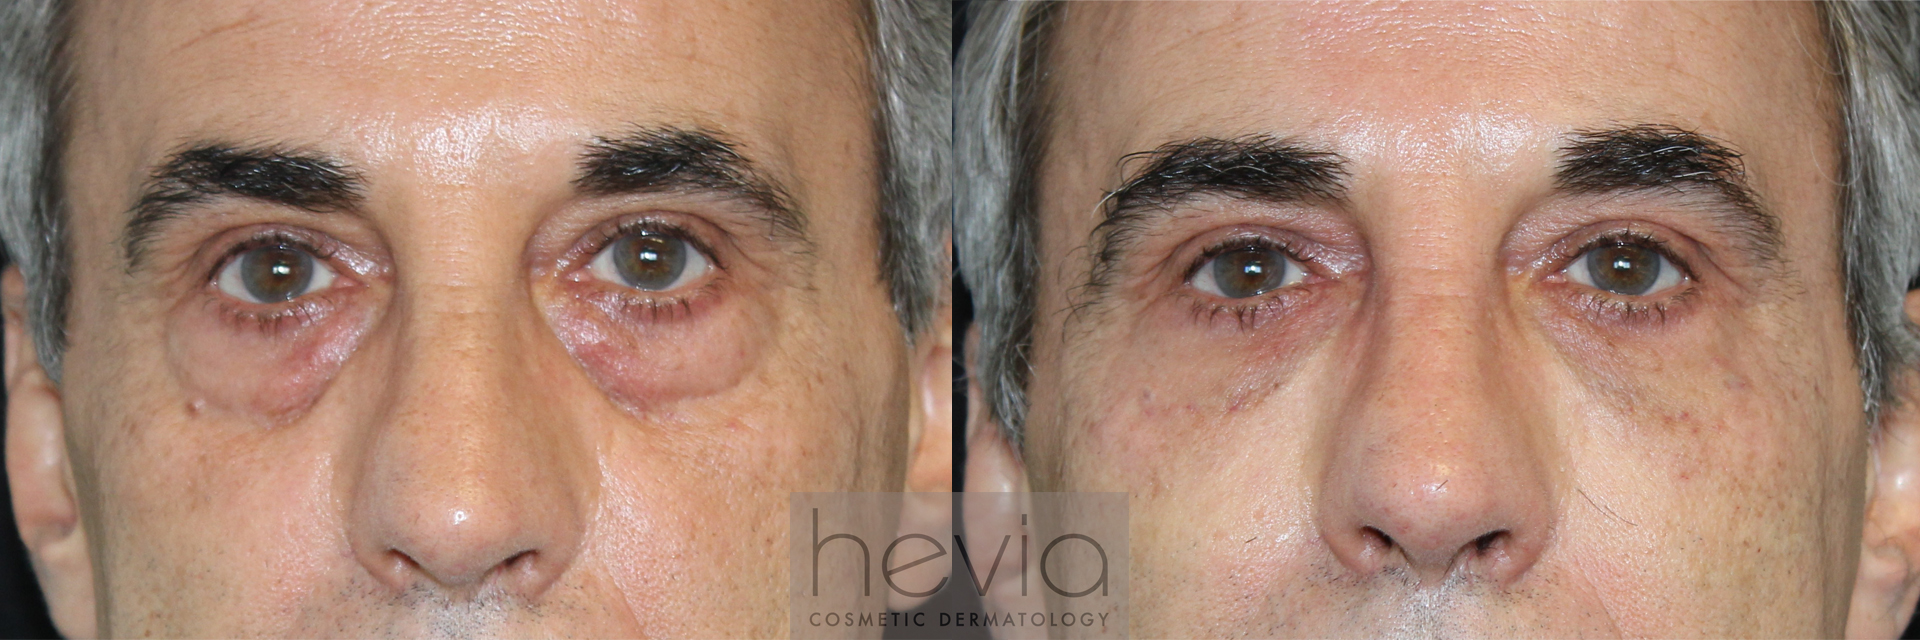 Undereye Correction Male before and after